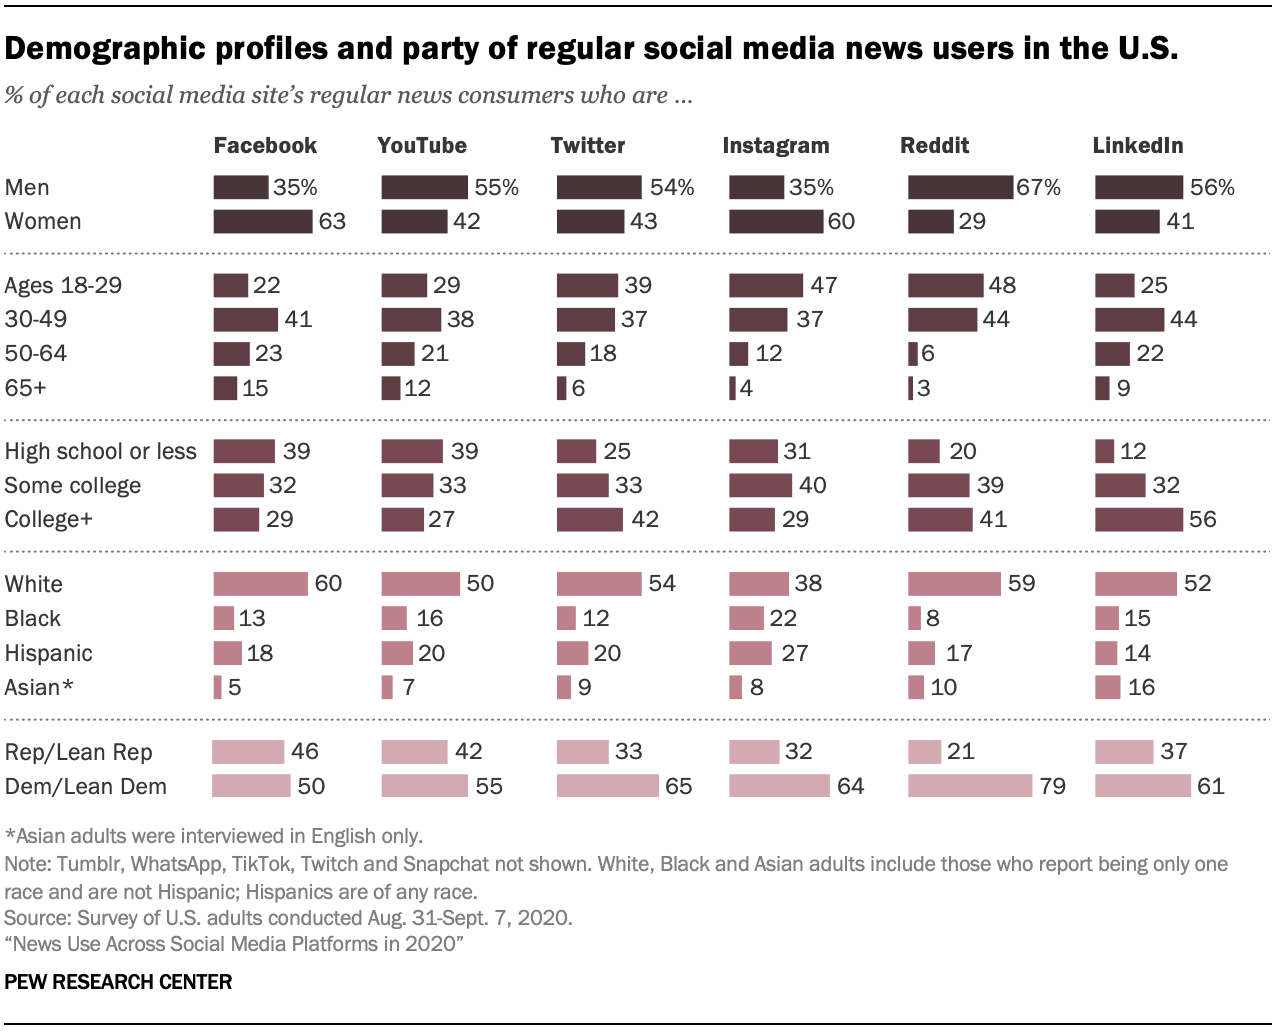 Demographic profiles and party of regular social media news users in the U.S.